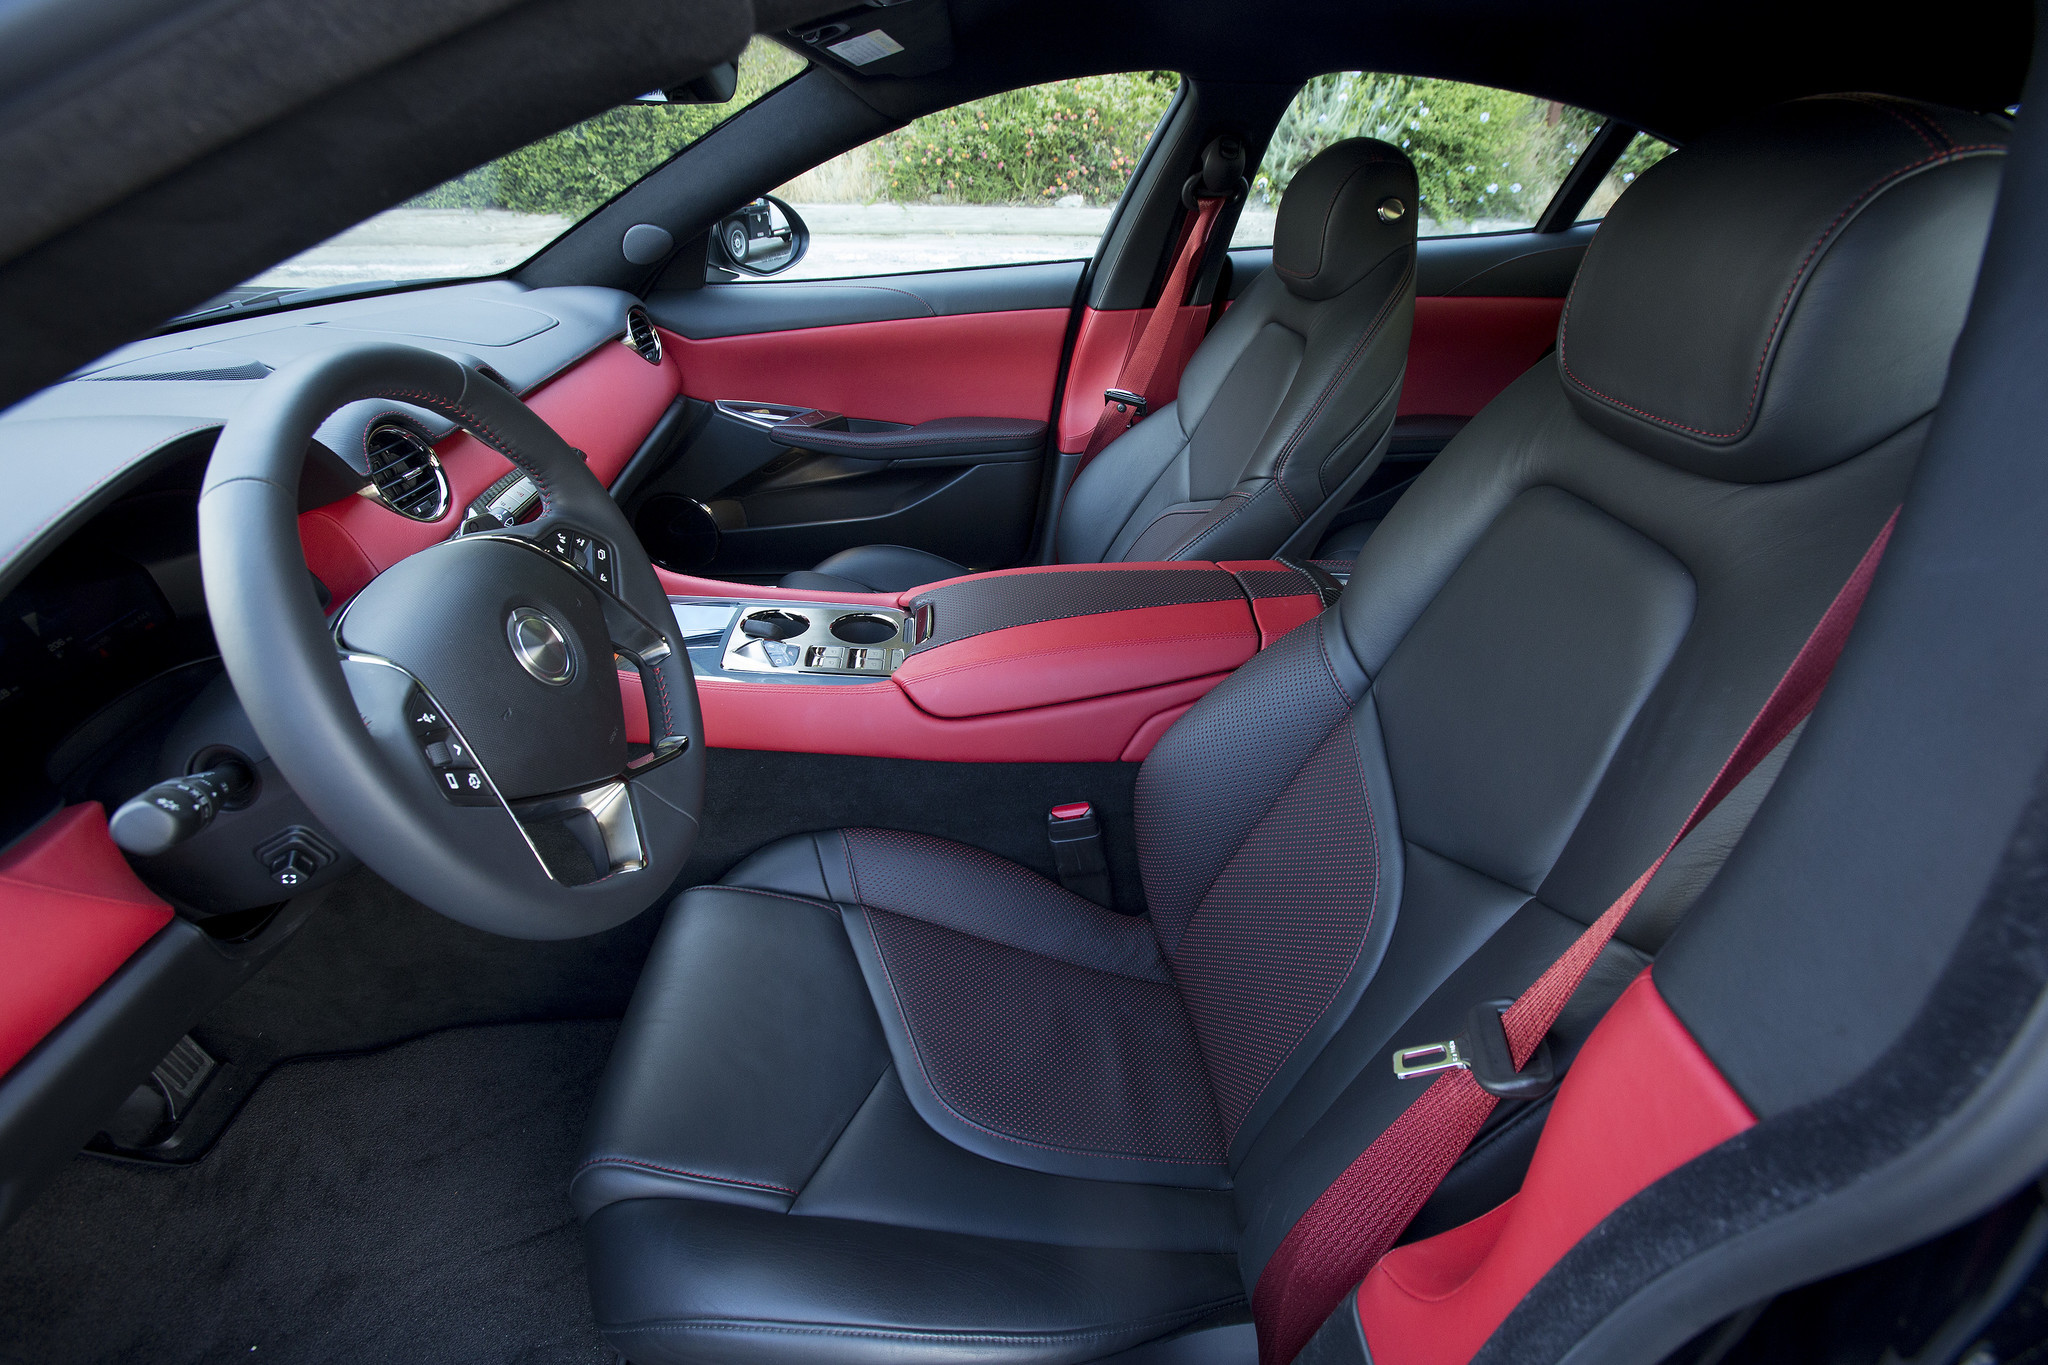 The Revero designers have outfitted their luxury car with rich, supple leather for a comfortable GT driving experience.